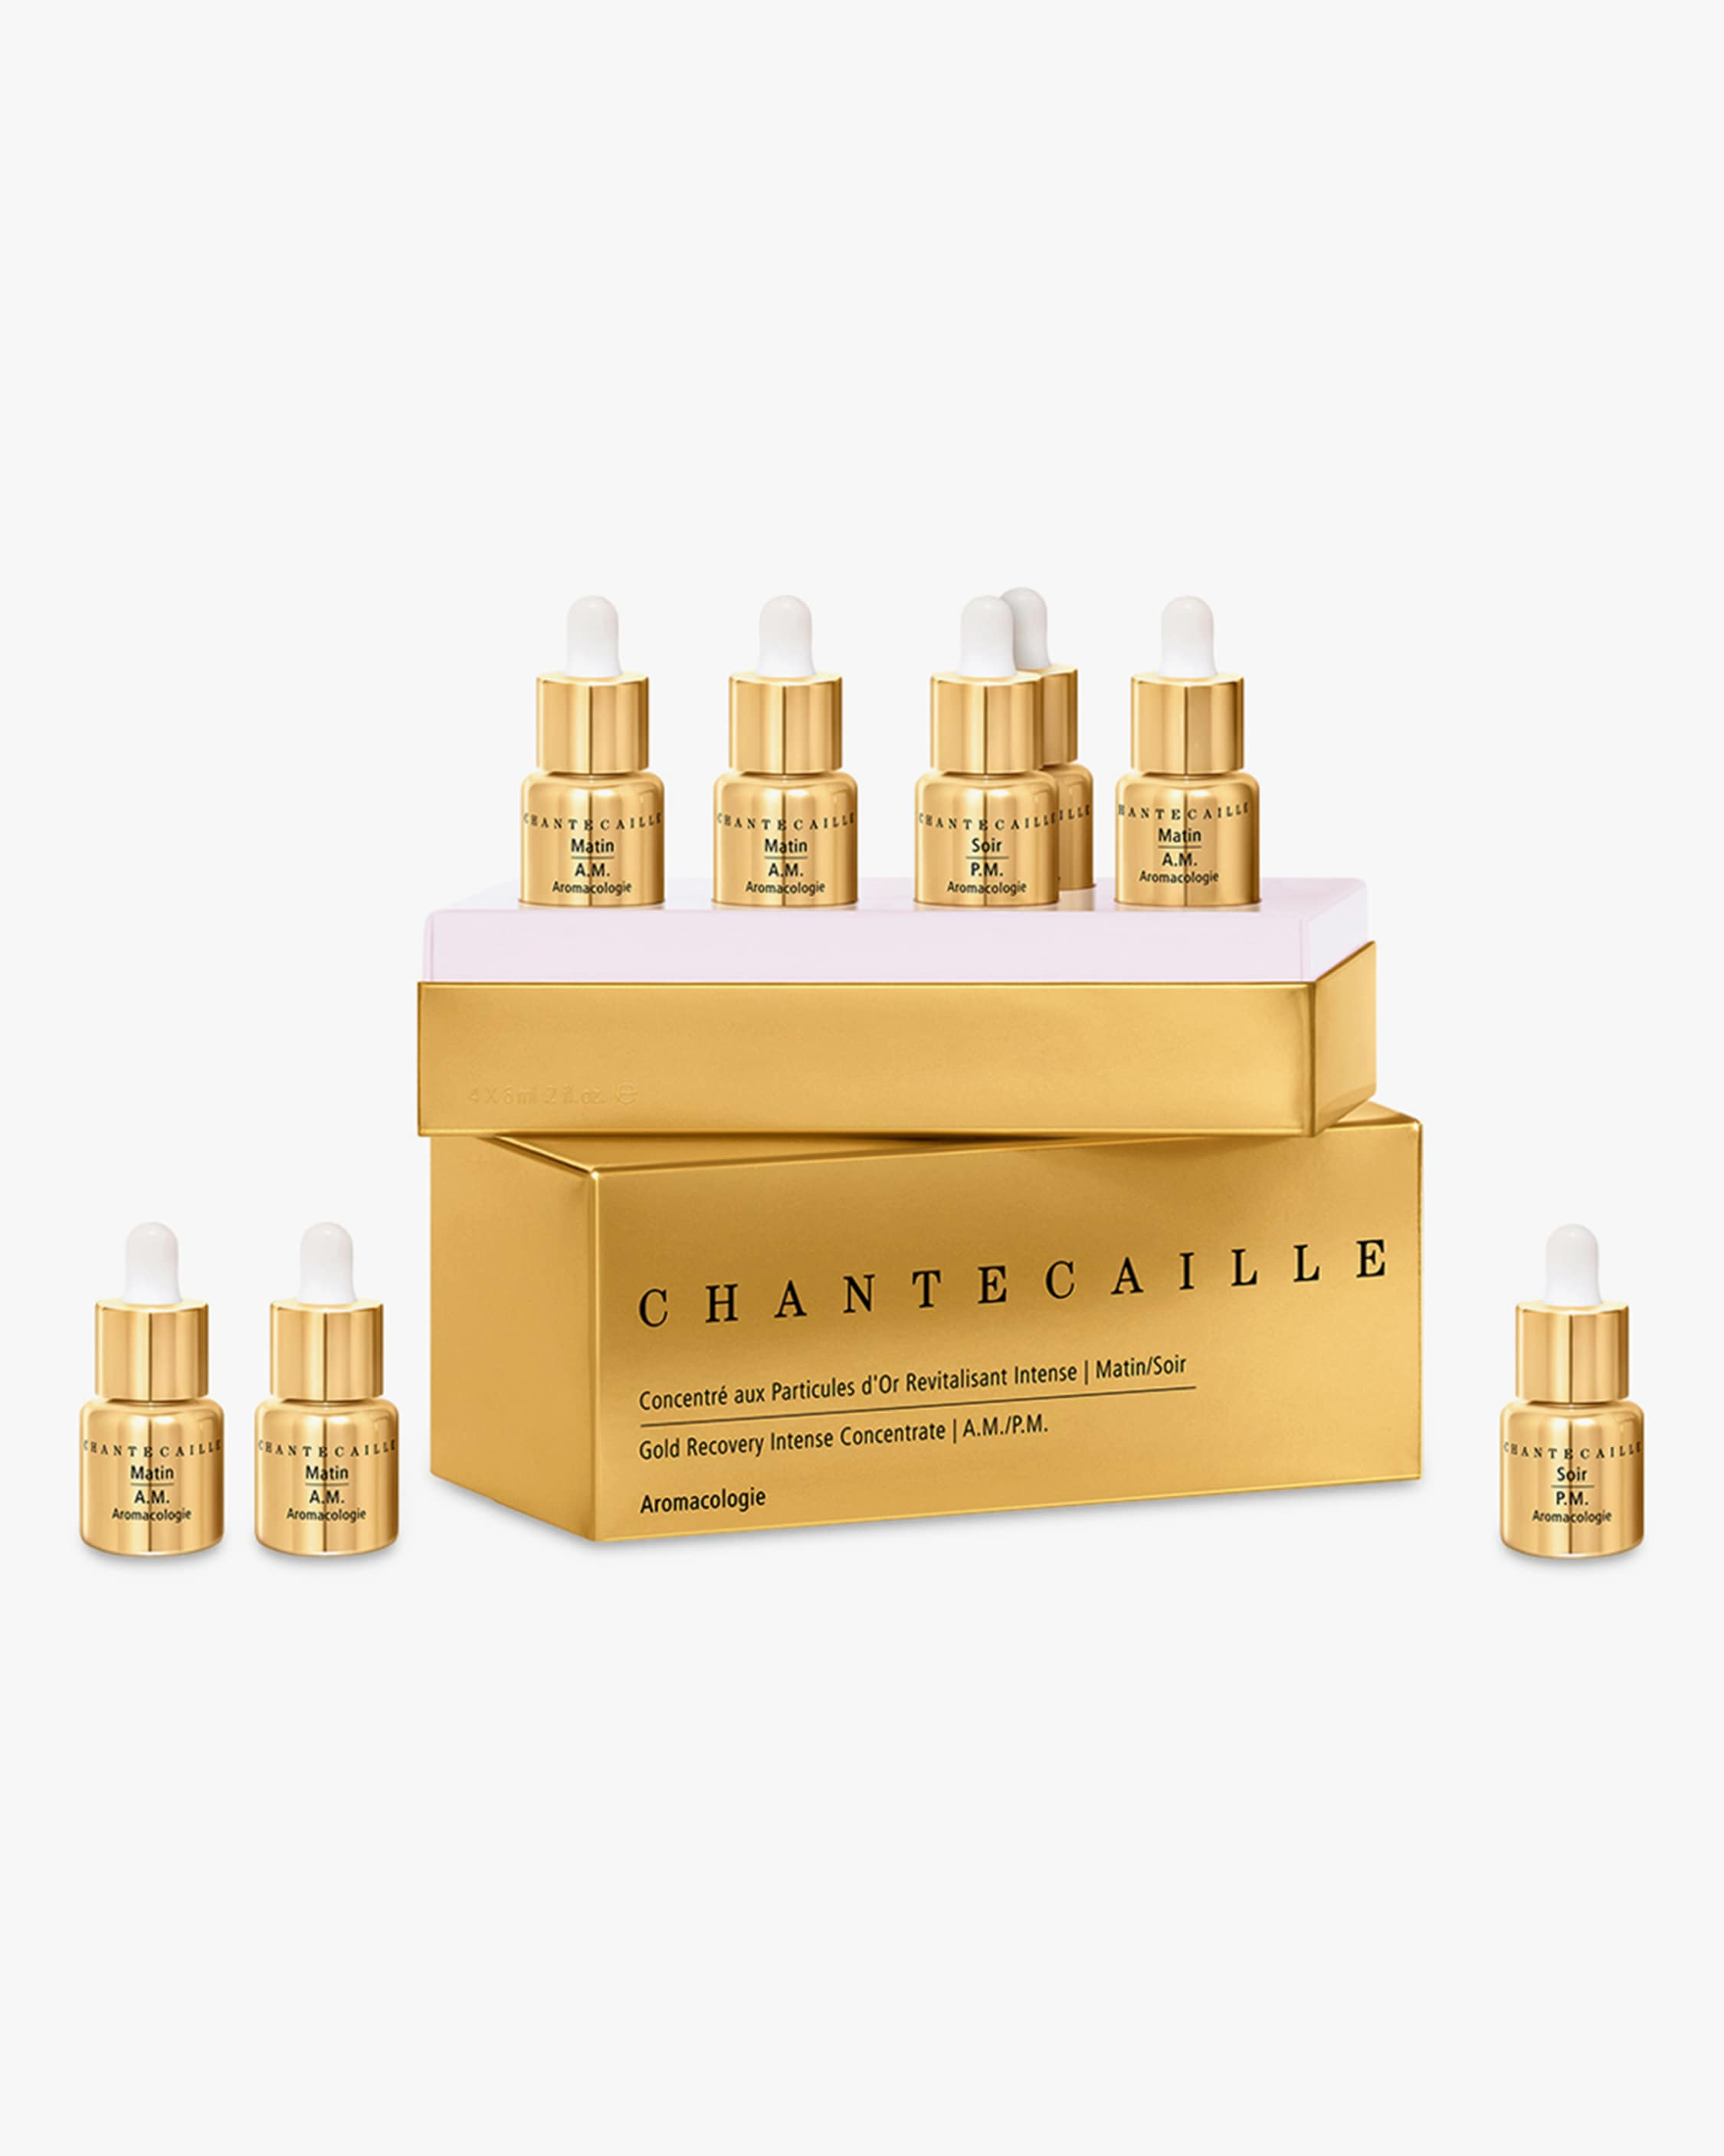 Chantecaille Gold Recovery Intense Concentrate A.M./P.M. 1